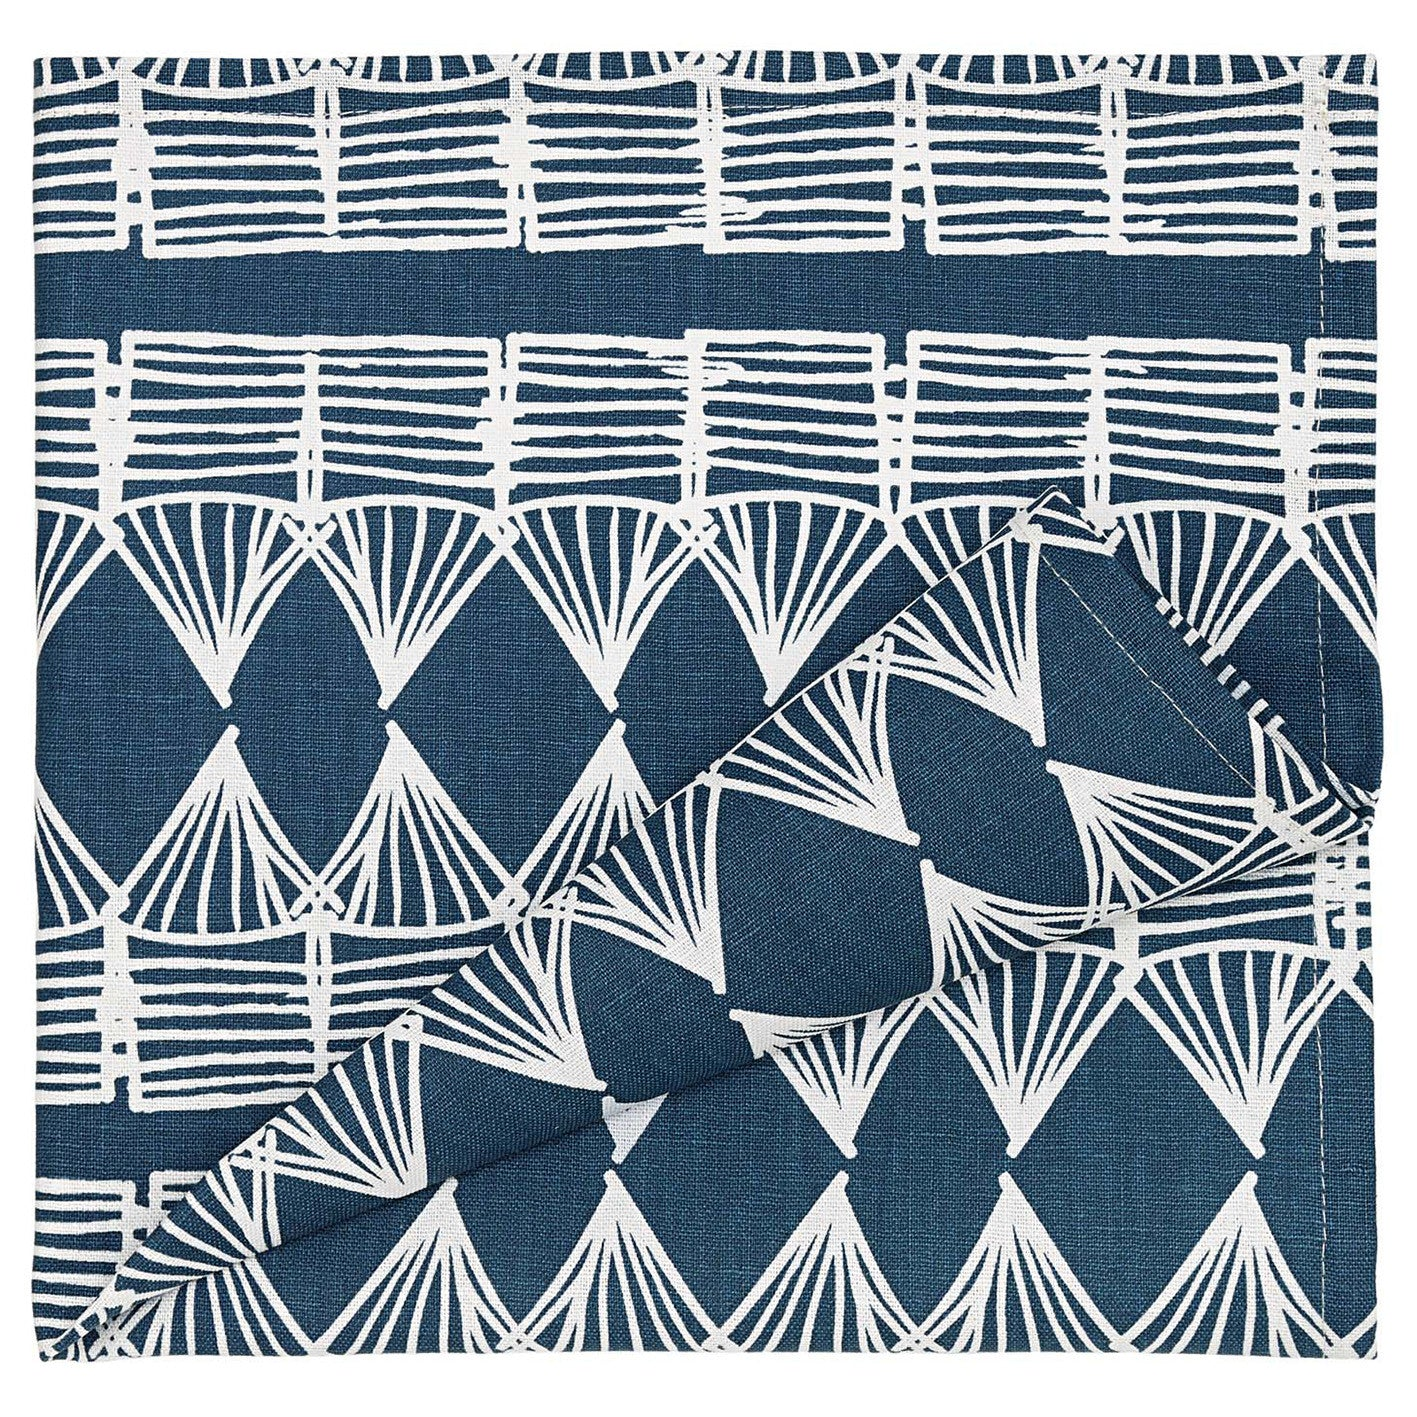 Tiki Huts Patterned Linen Napkins in Dark Petrol Blue